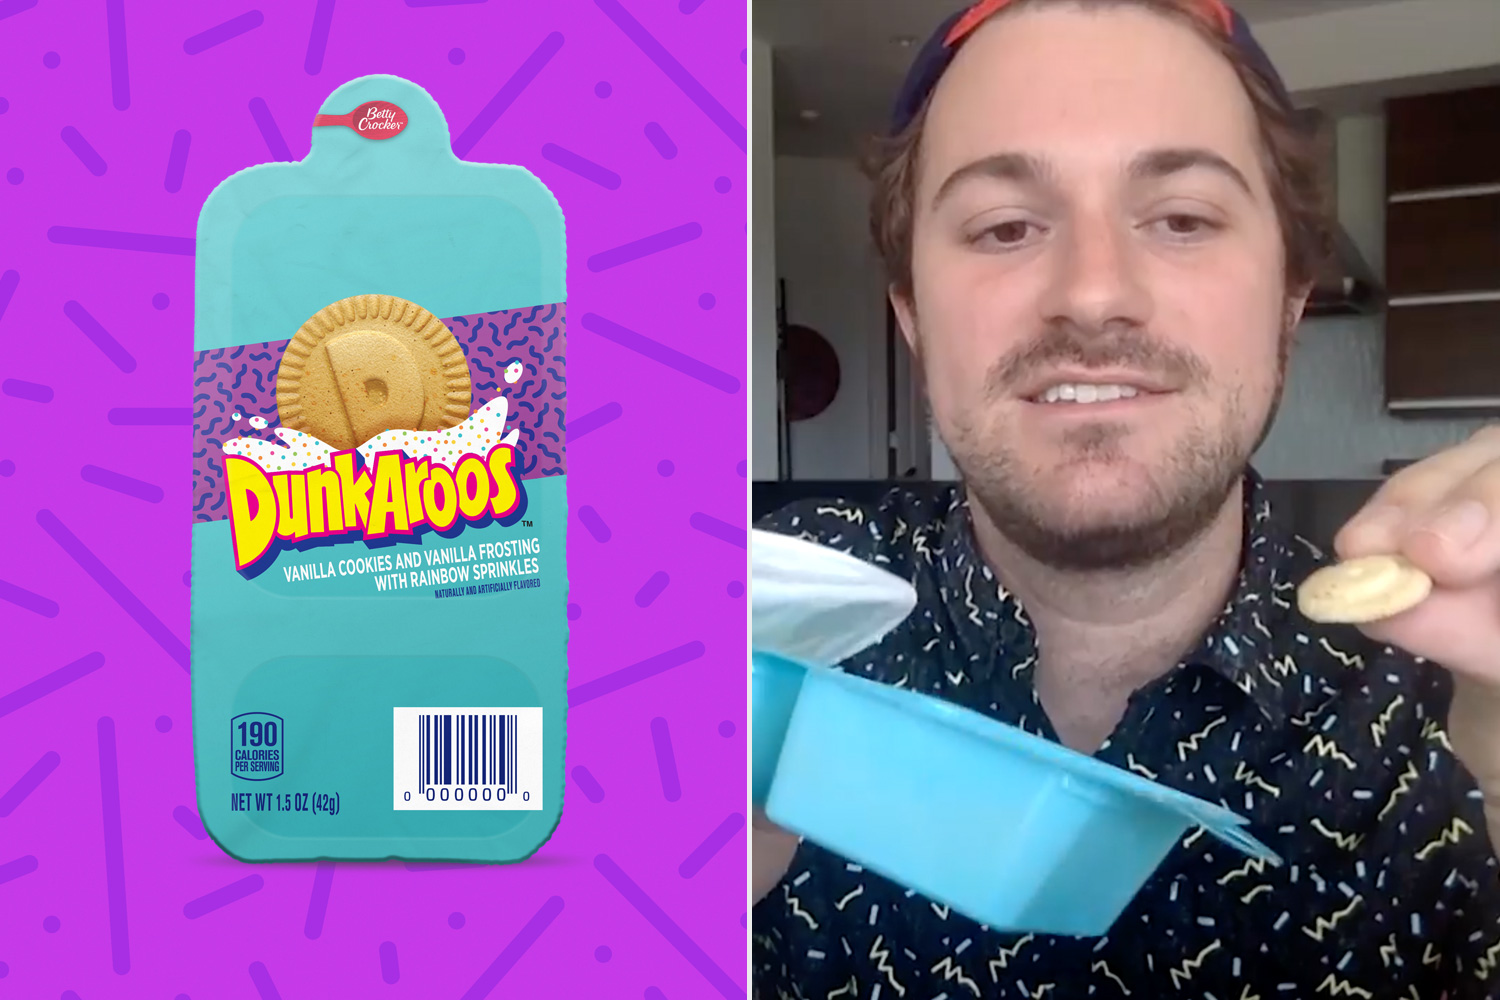 Dunkaroos Are Back! See What Our Food Editors Thought of Them